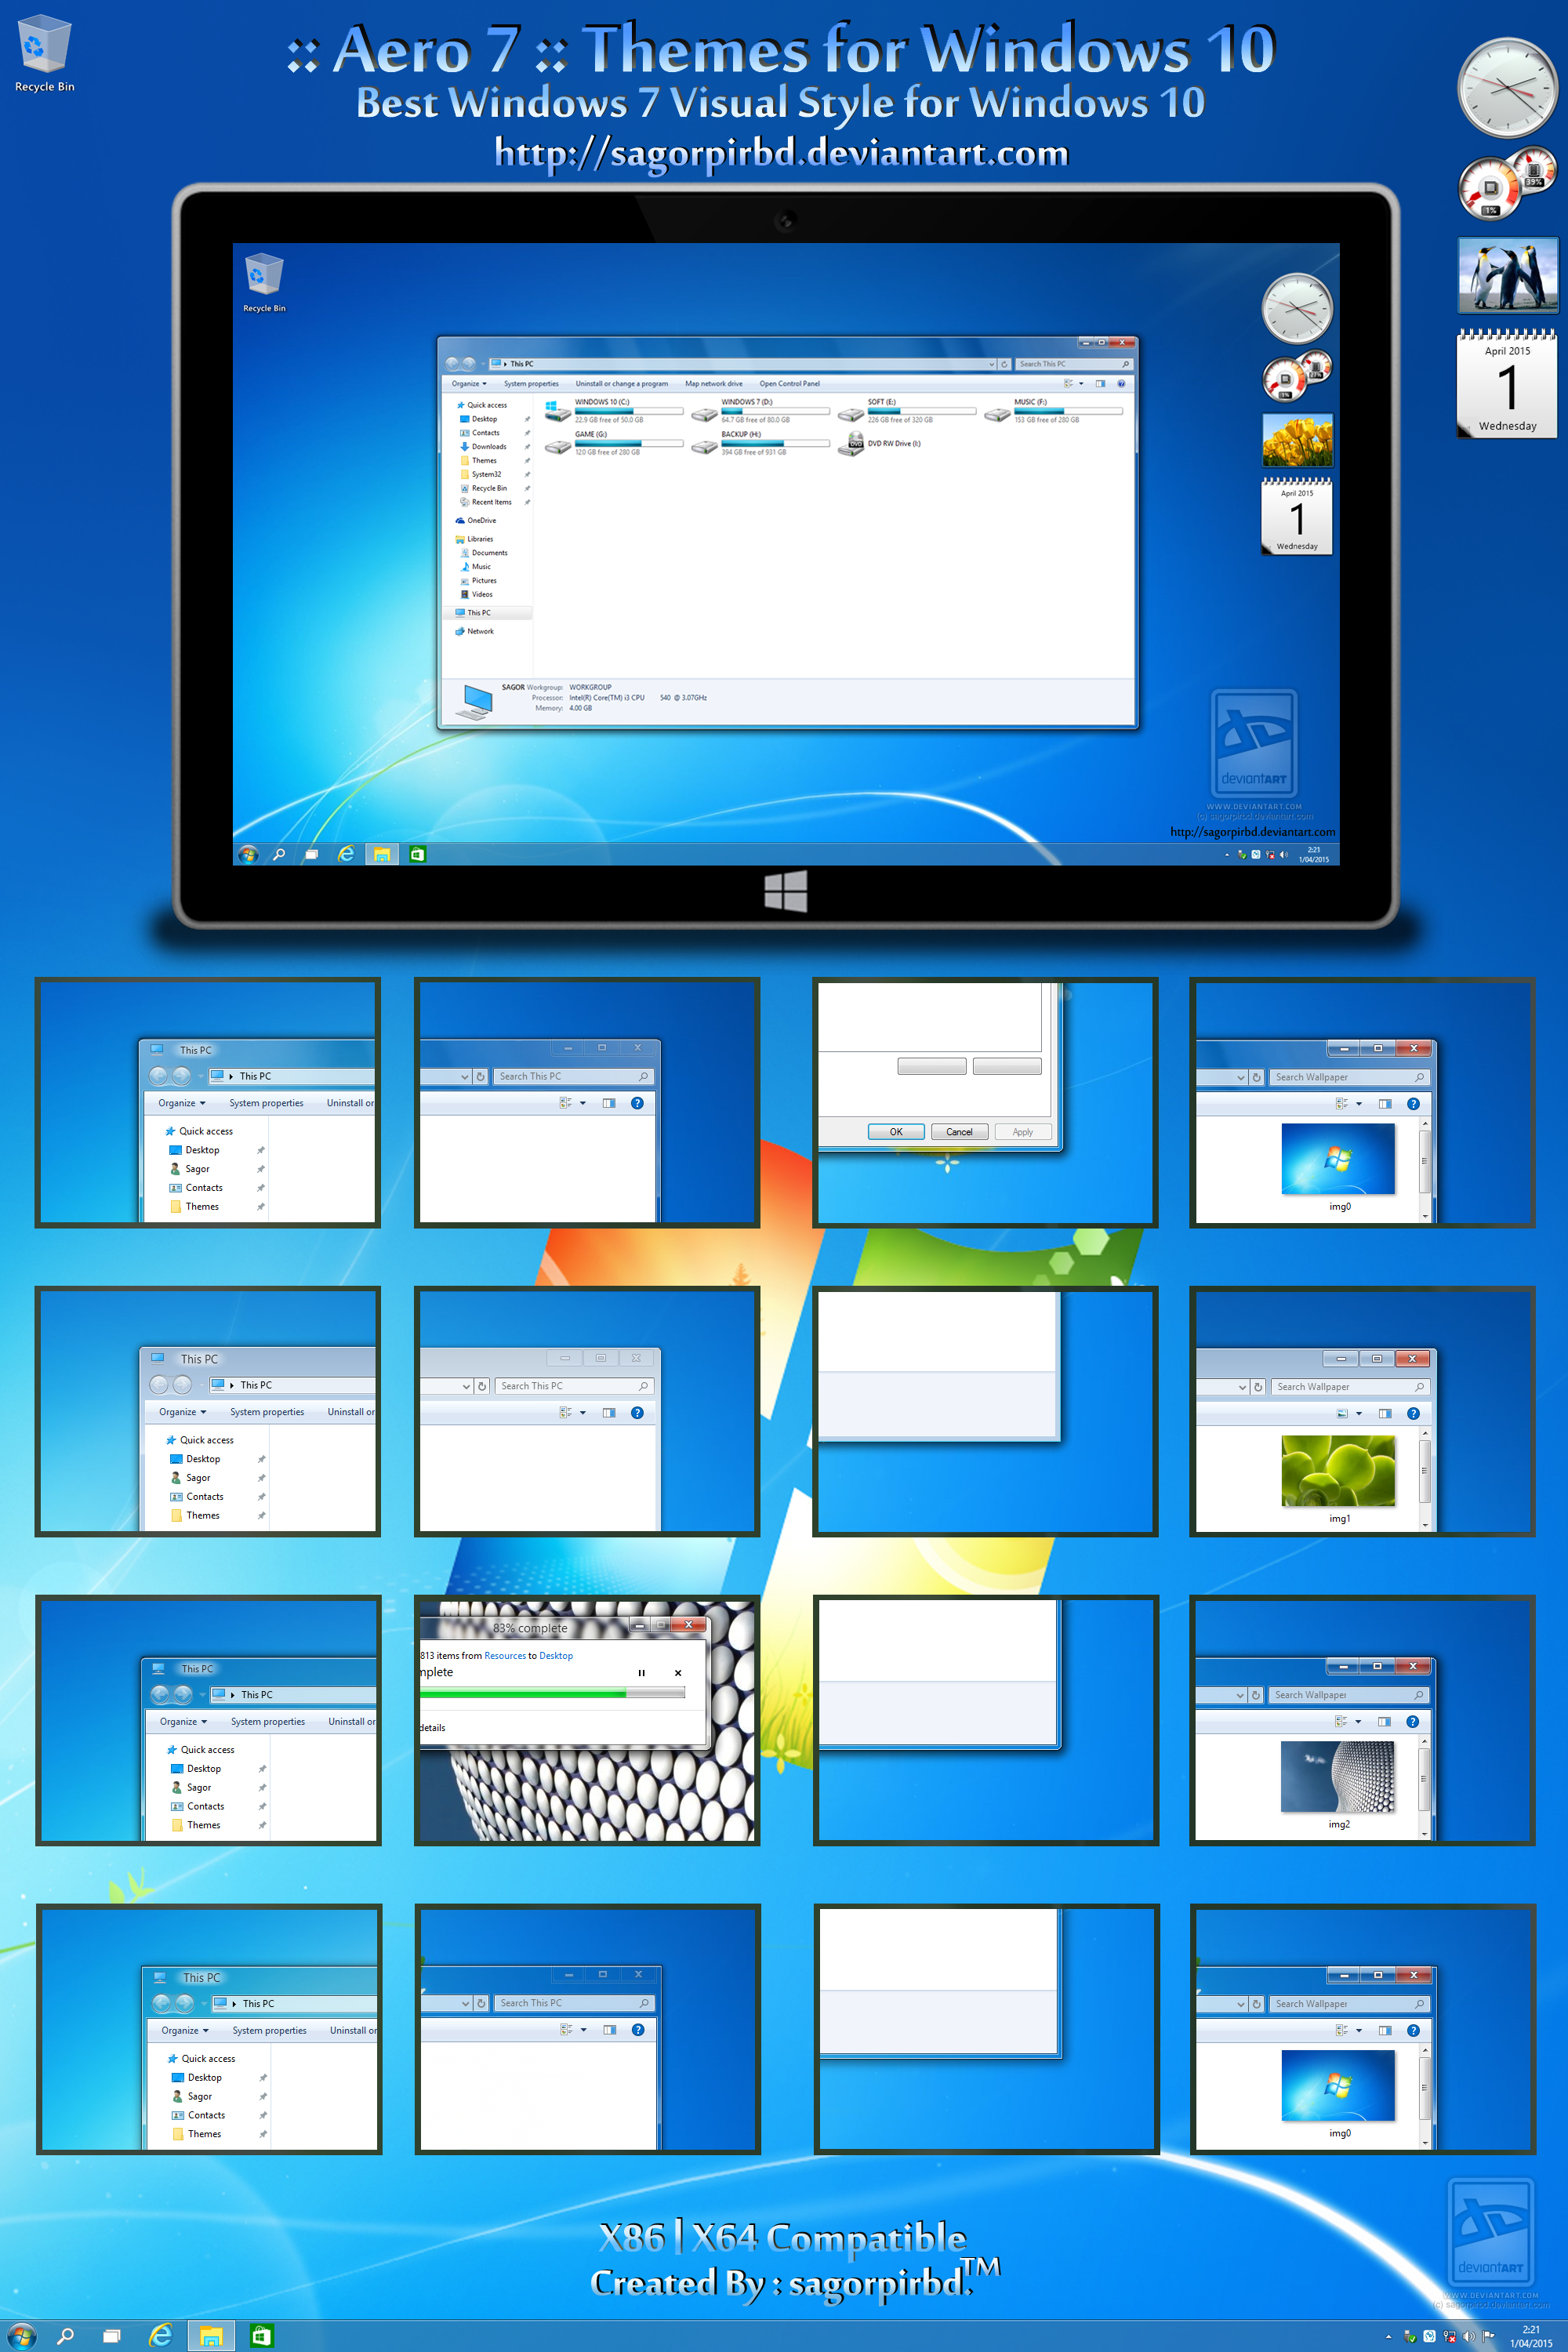 Aero 7 Themes for Win10 Final by sagorpirbd on DeviantArt